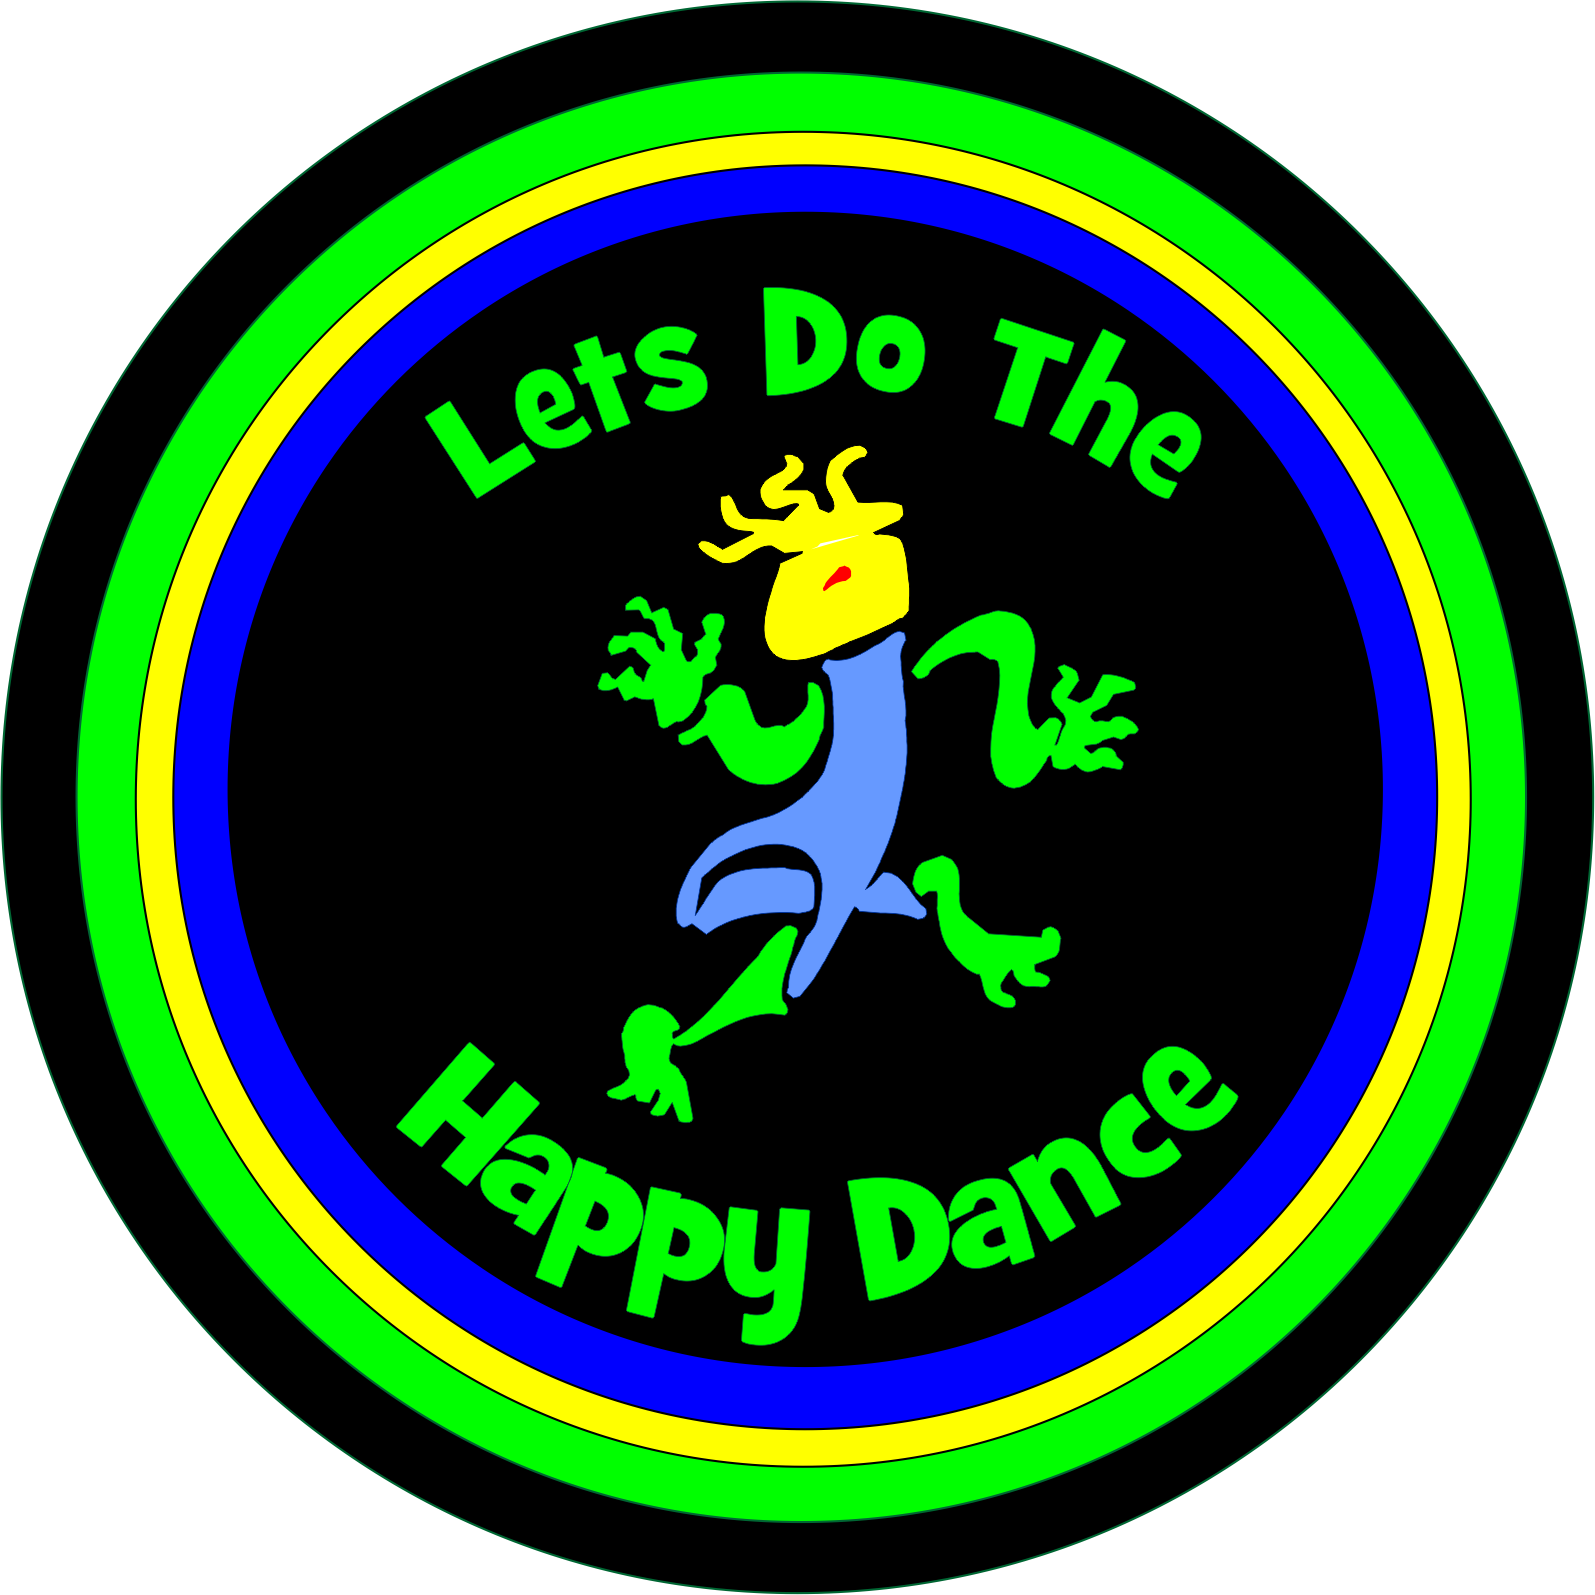 Happy Dancing Lizard Spare Tire Cover